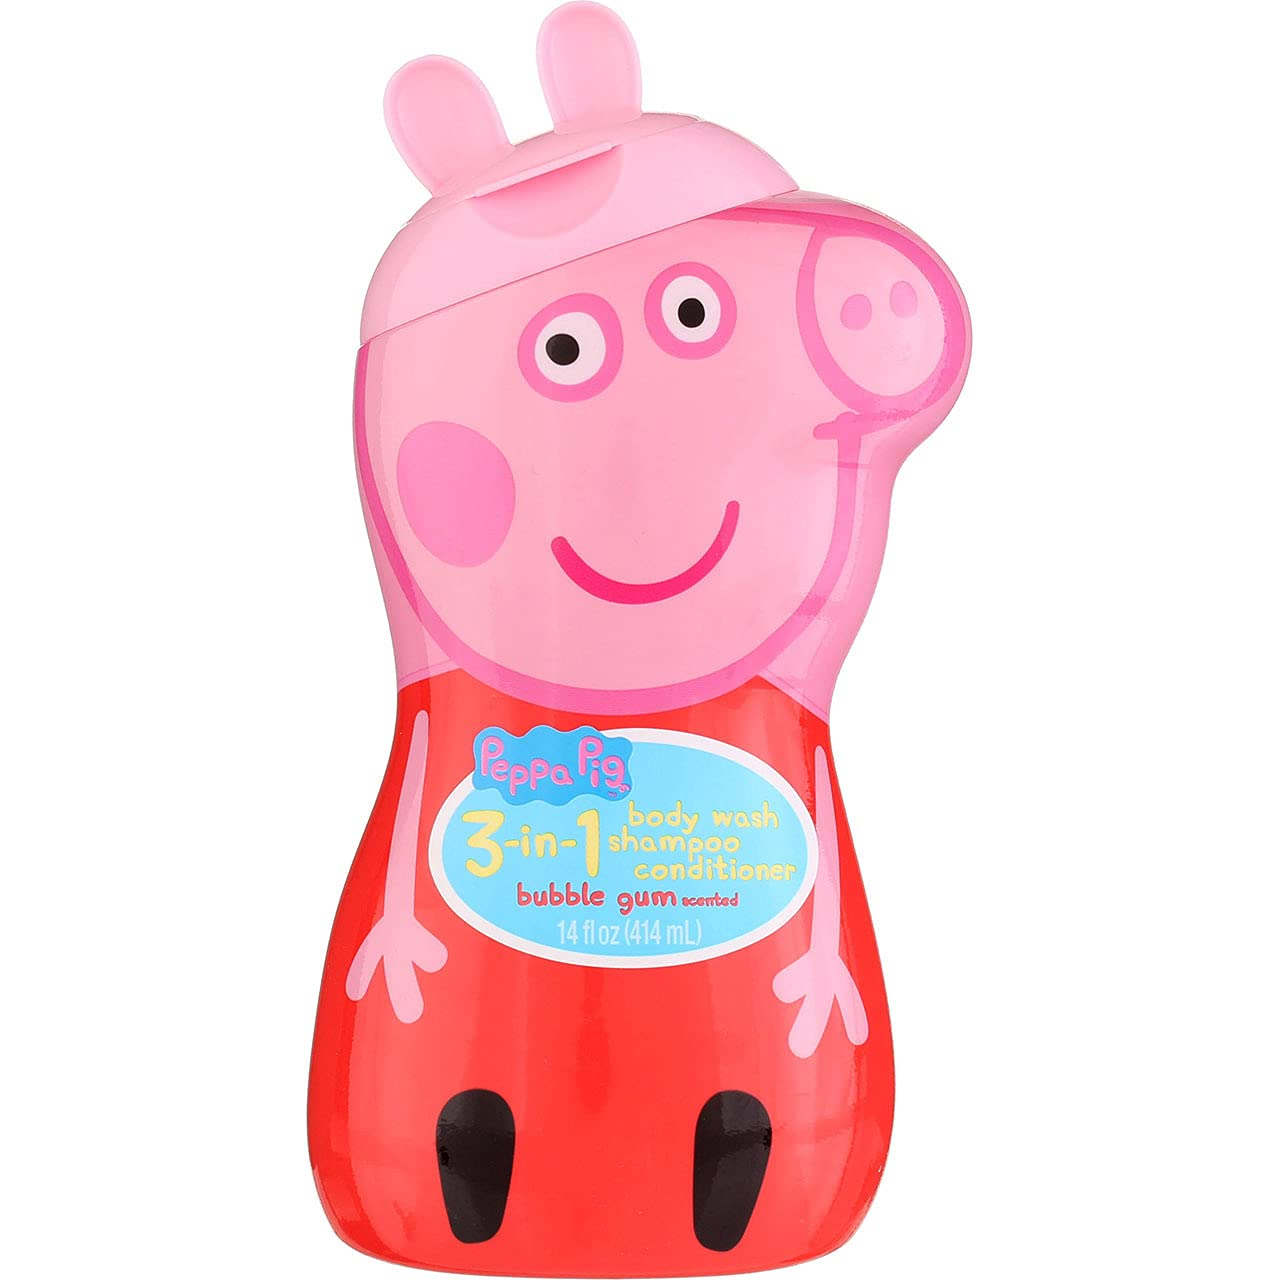 Max 82% OFF peppa pig 3 Seattle Mall in 1 conditioner wash shampoo body